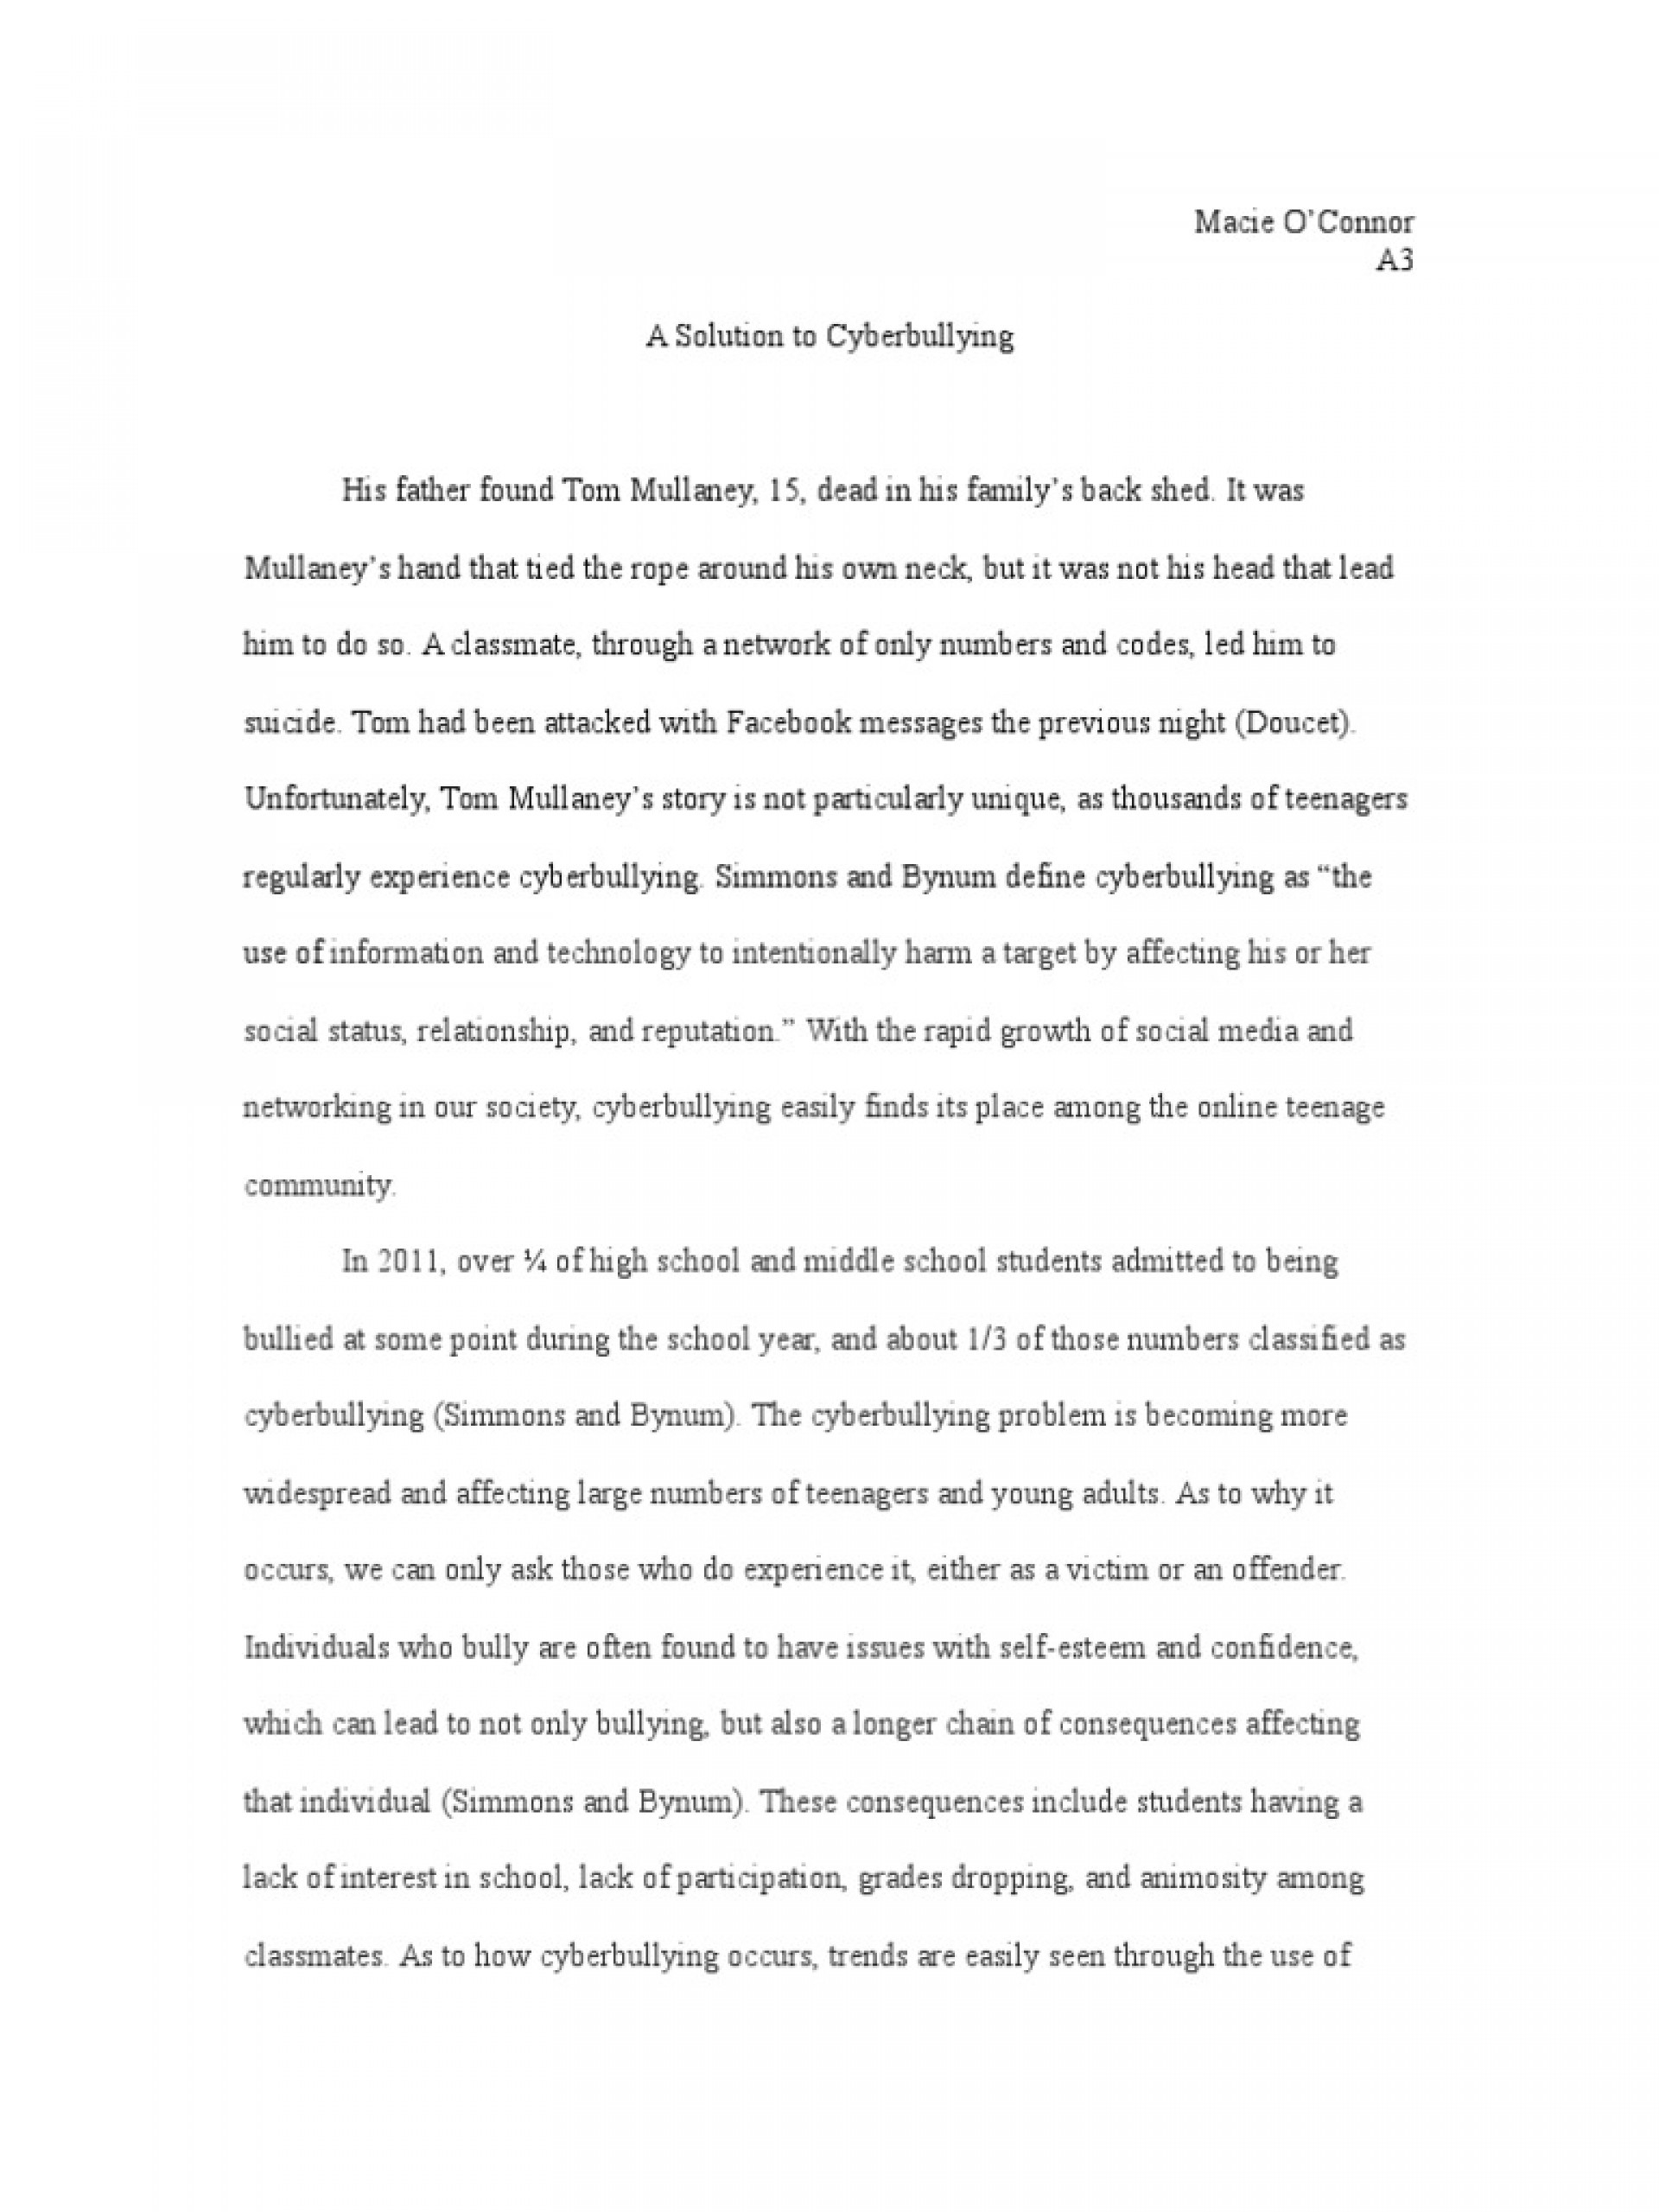 008 Essay Example Bullying Problem Solution Cyberbullying Communication How To Stop In Schools High School Avoid At Deal With Ways Prevent Awful Topics Cyber Titles Anti 1920